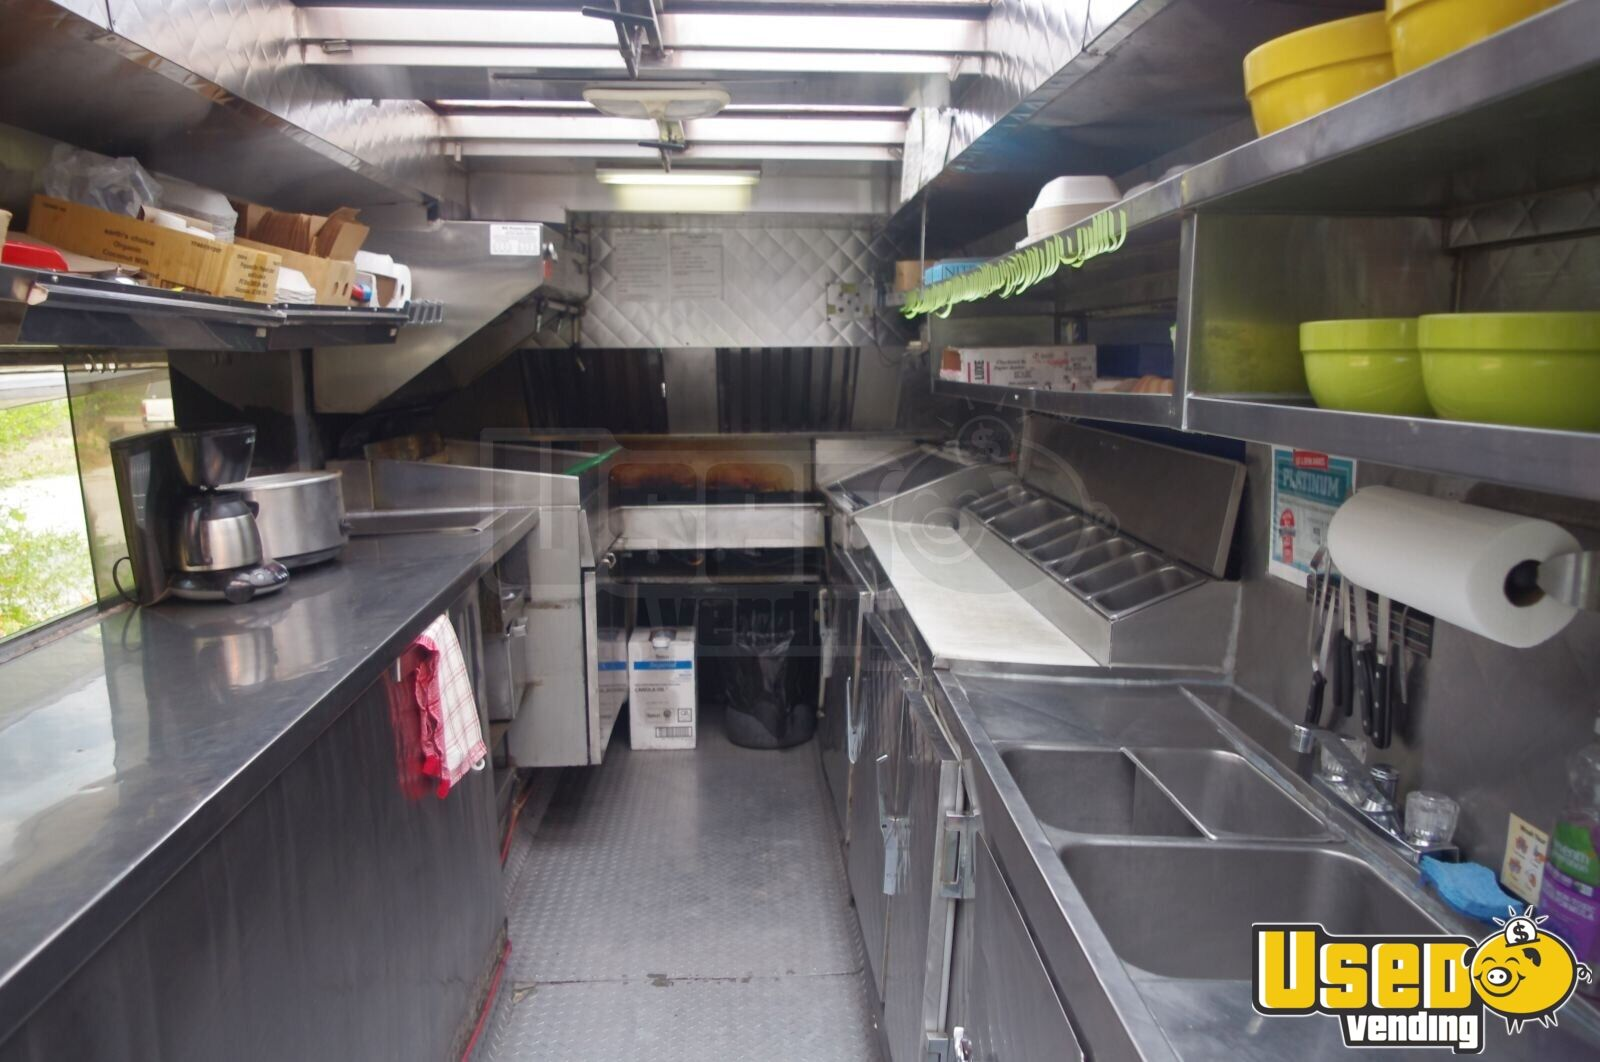 1983 Chevrolet G10 Food Truck Upright Freezer British Columbia Gas Engine for Sale - 4